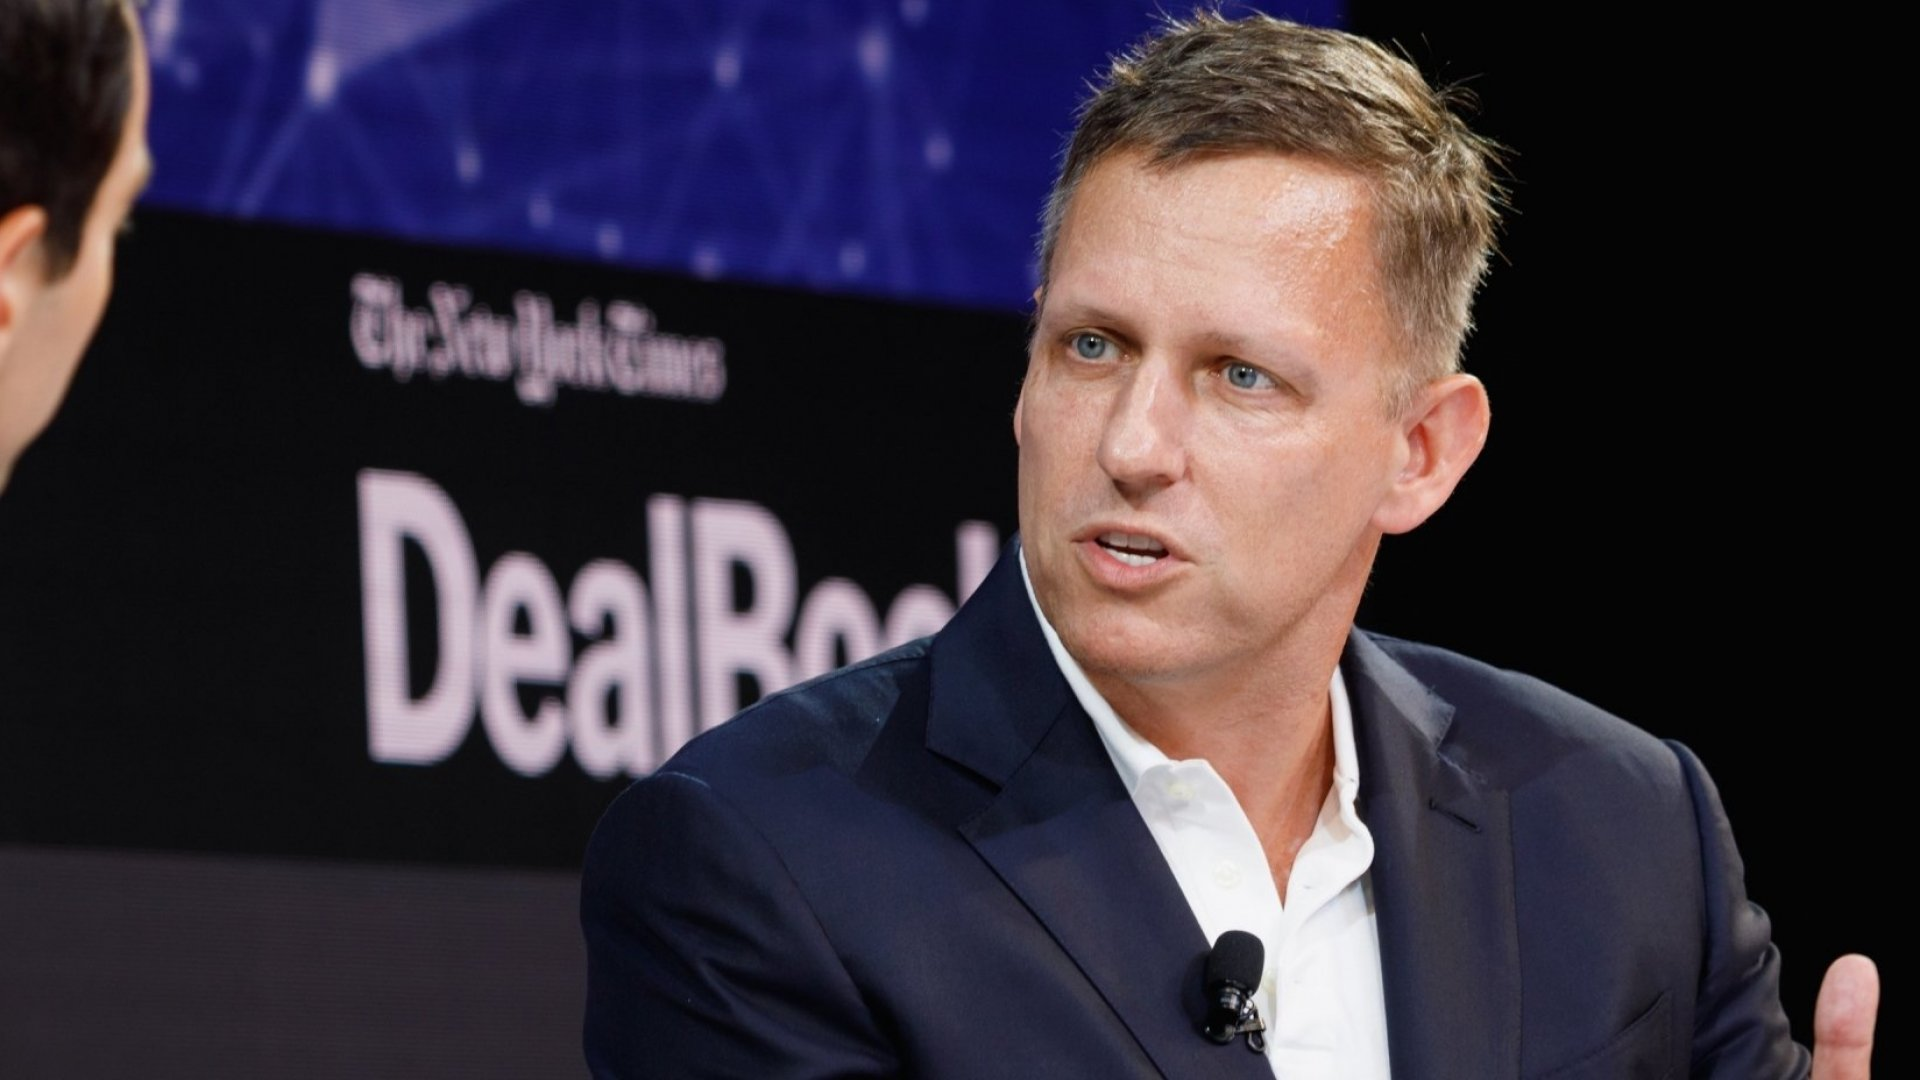 Billionaire Peter Thiel's Major Accusations Against Google Teaches a Crucial Lesson for Leaders Looking to Mix Politics and Business